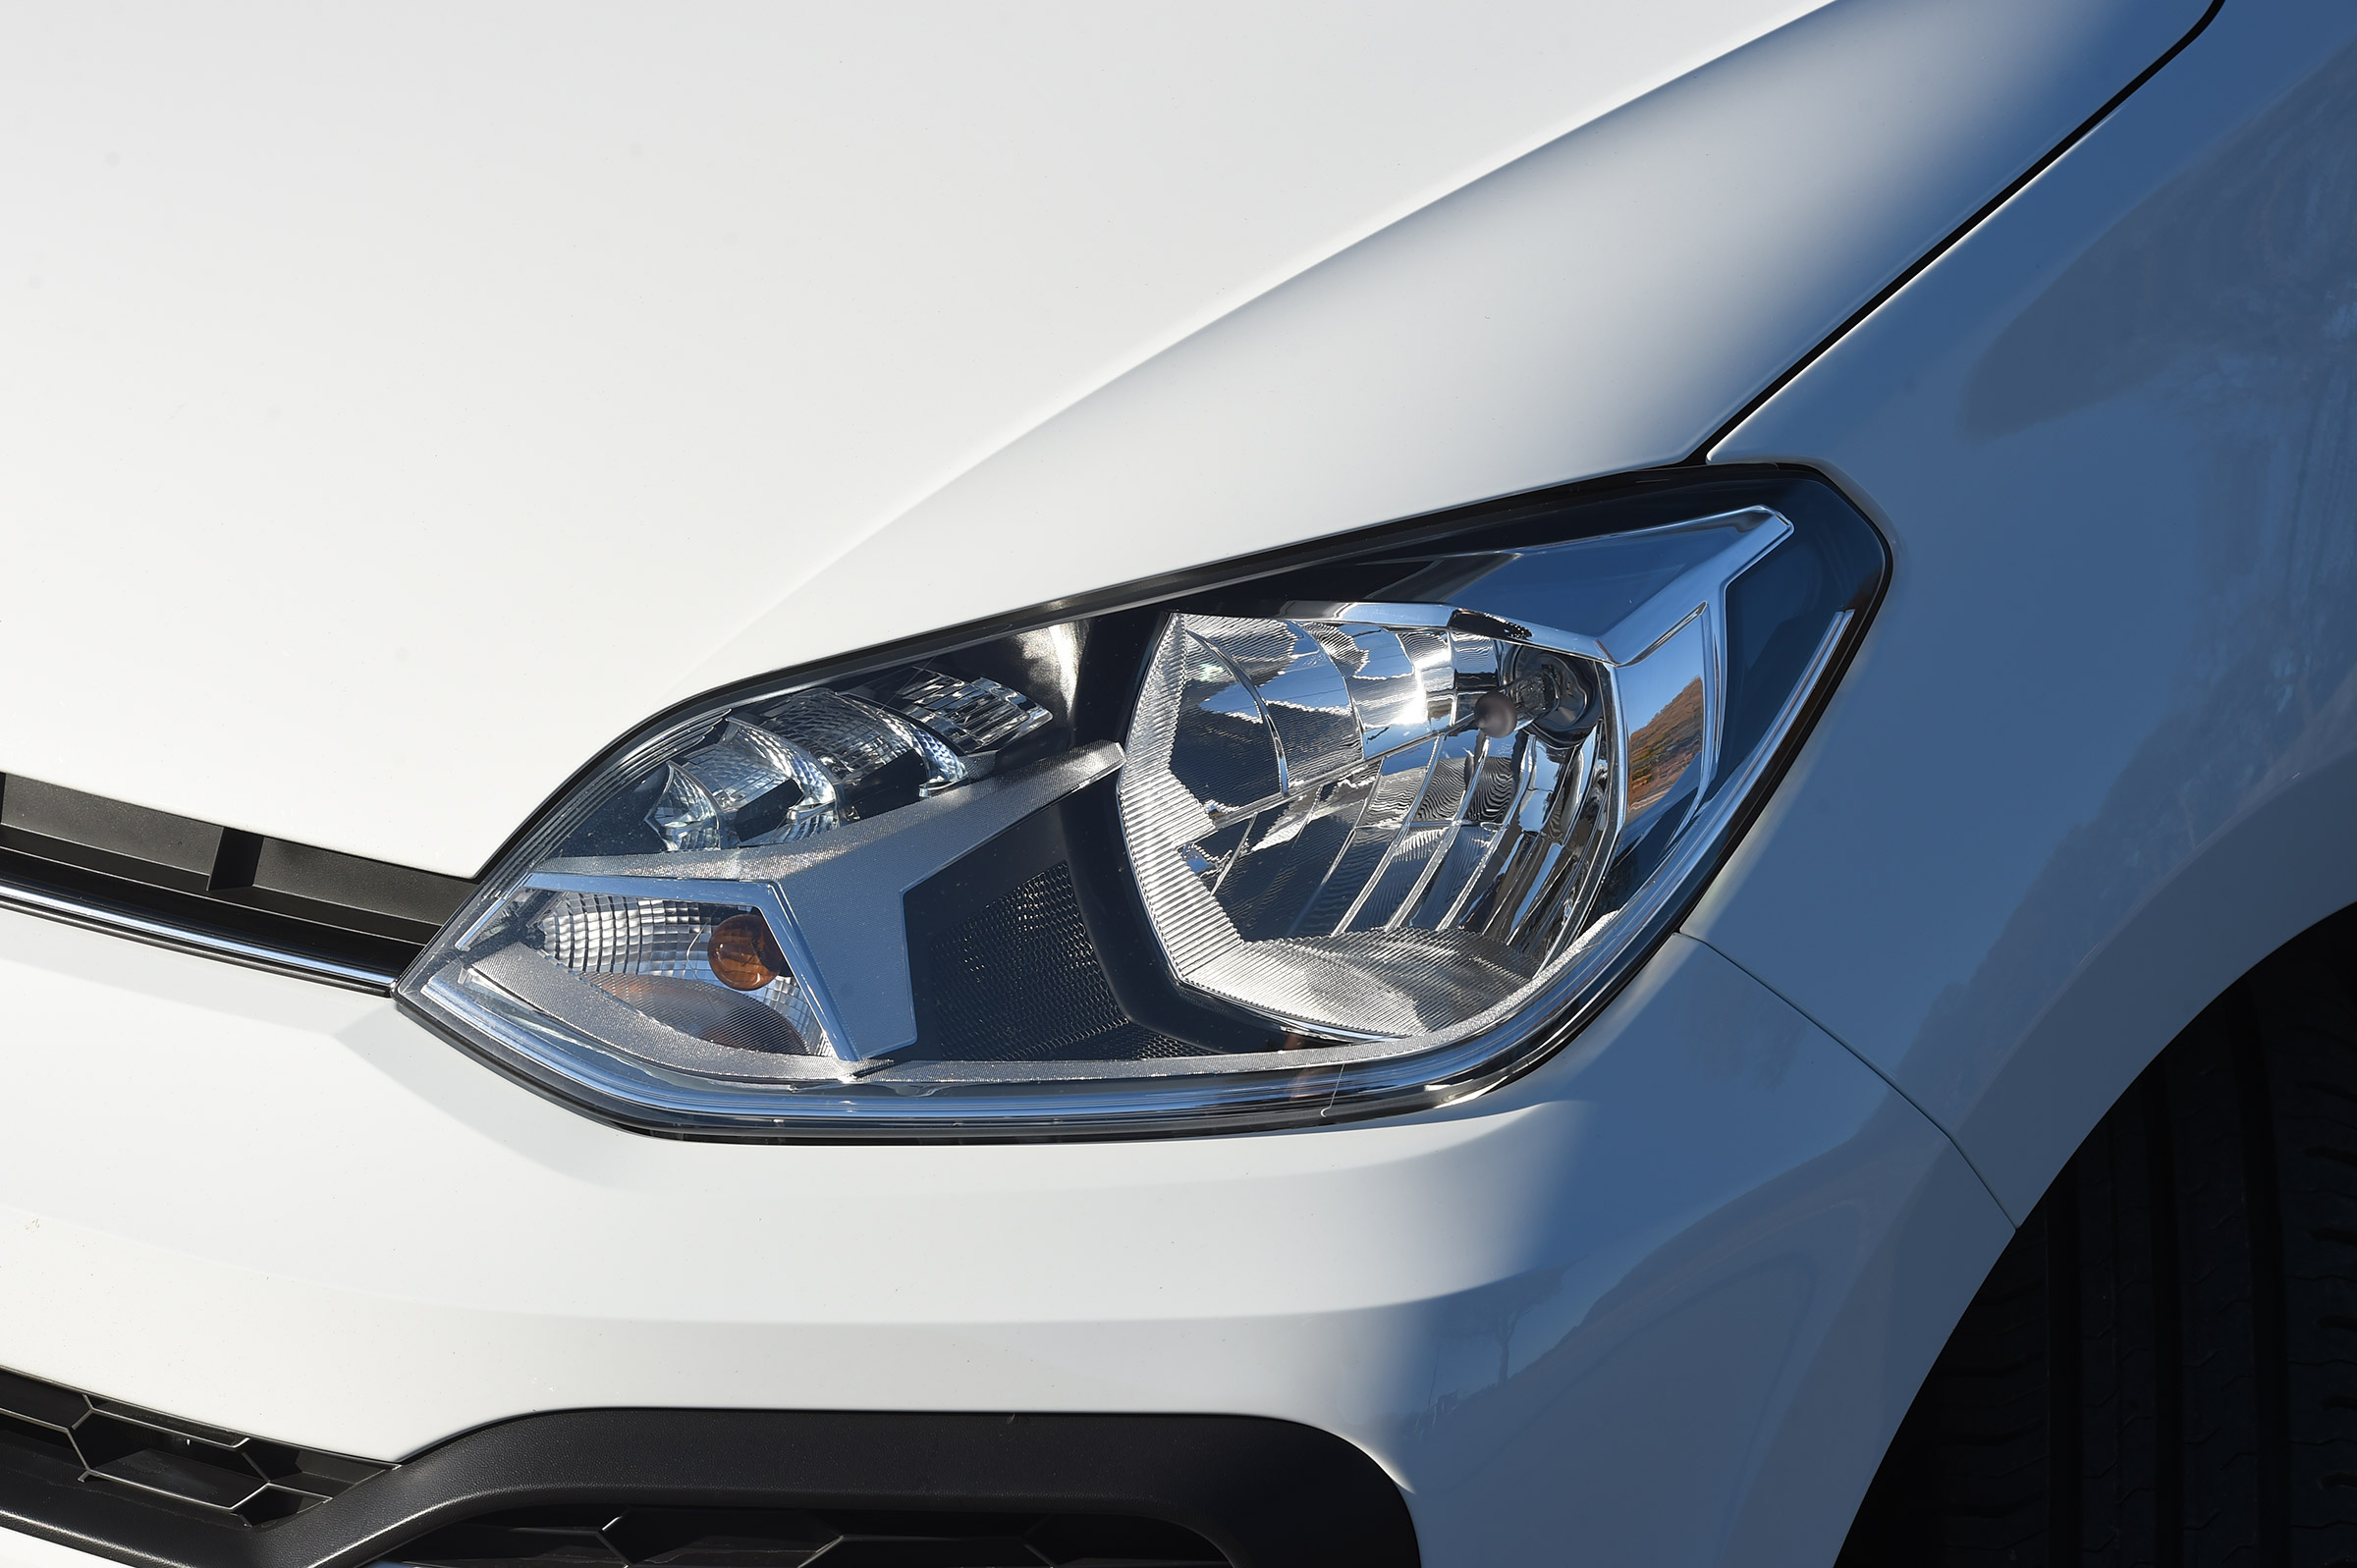 2017 Volkswagen Up Exterior White View Headlight (Photo 4 of 15)